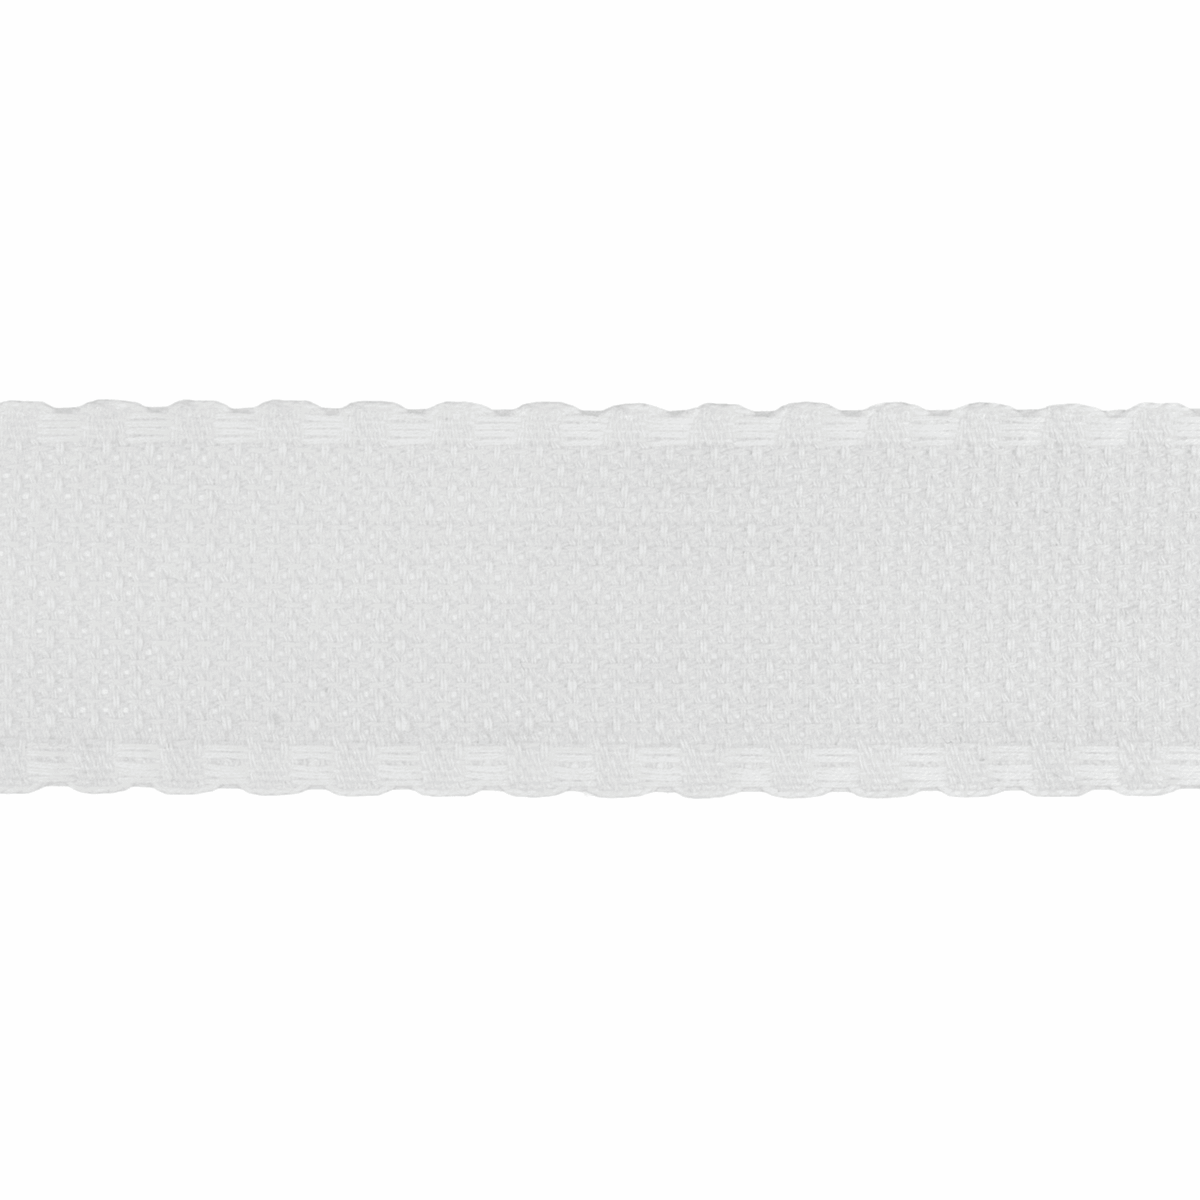 Picture of Needlecraft Fabric: Aida Band: 16 Count: 8m x 70mm: White